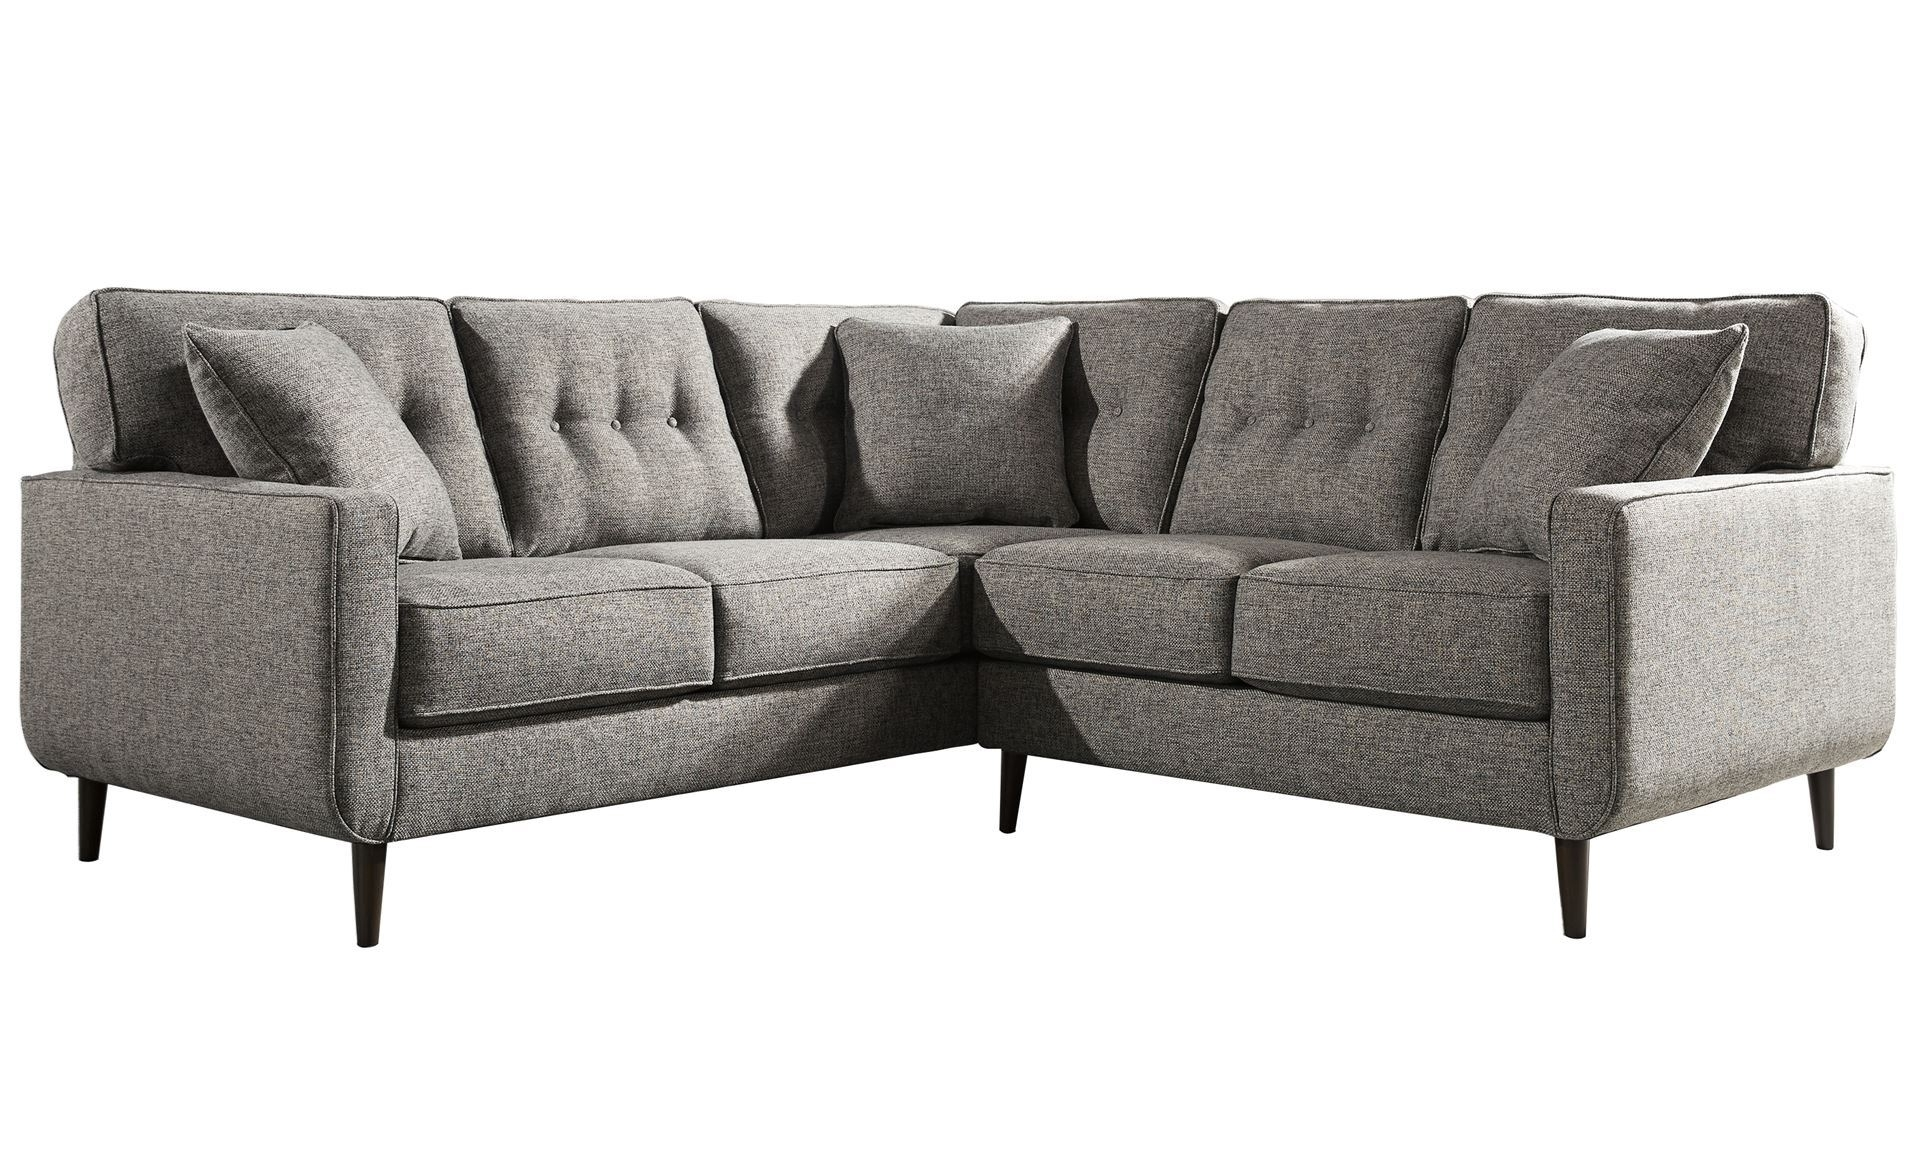 Most Recent Zardoni Sectional Throughout Wichita Ks Sectional Sofas (View 14 of 20)